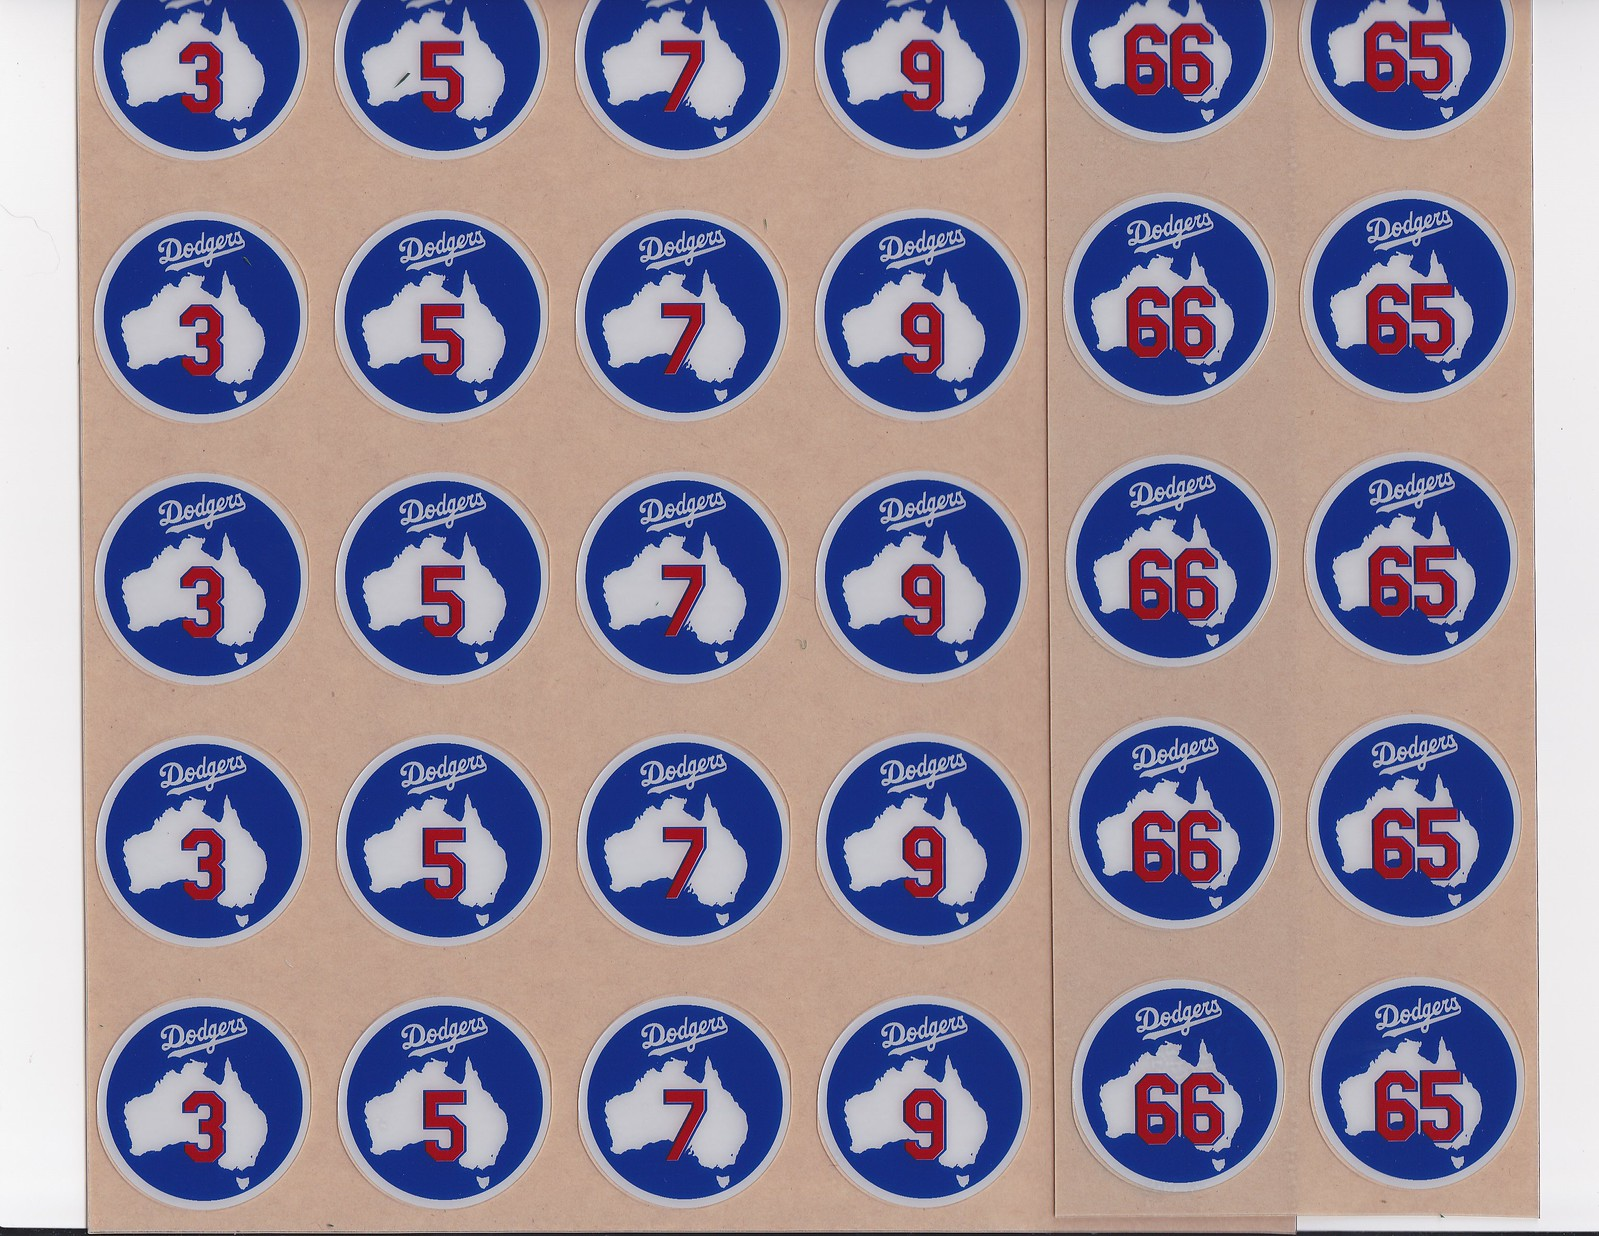 4e146857f The Dodgers used specially designed bat knob decals.